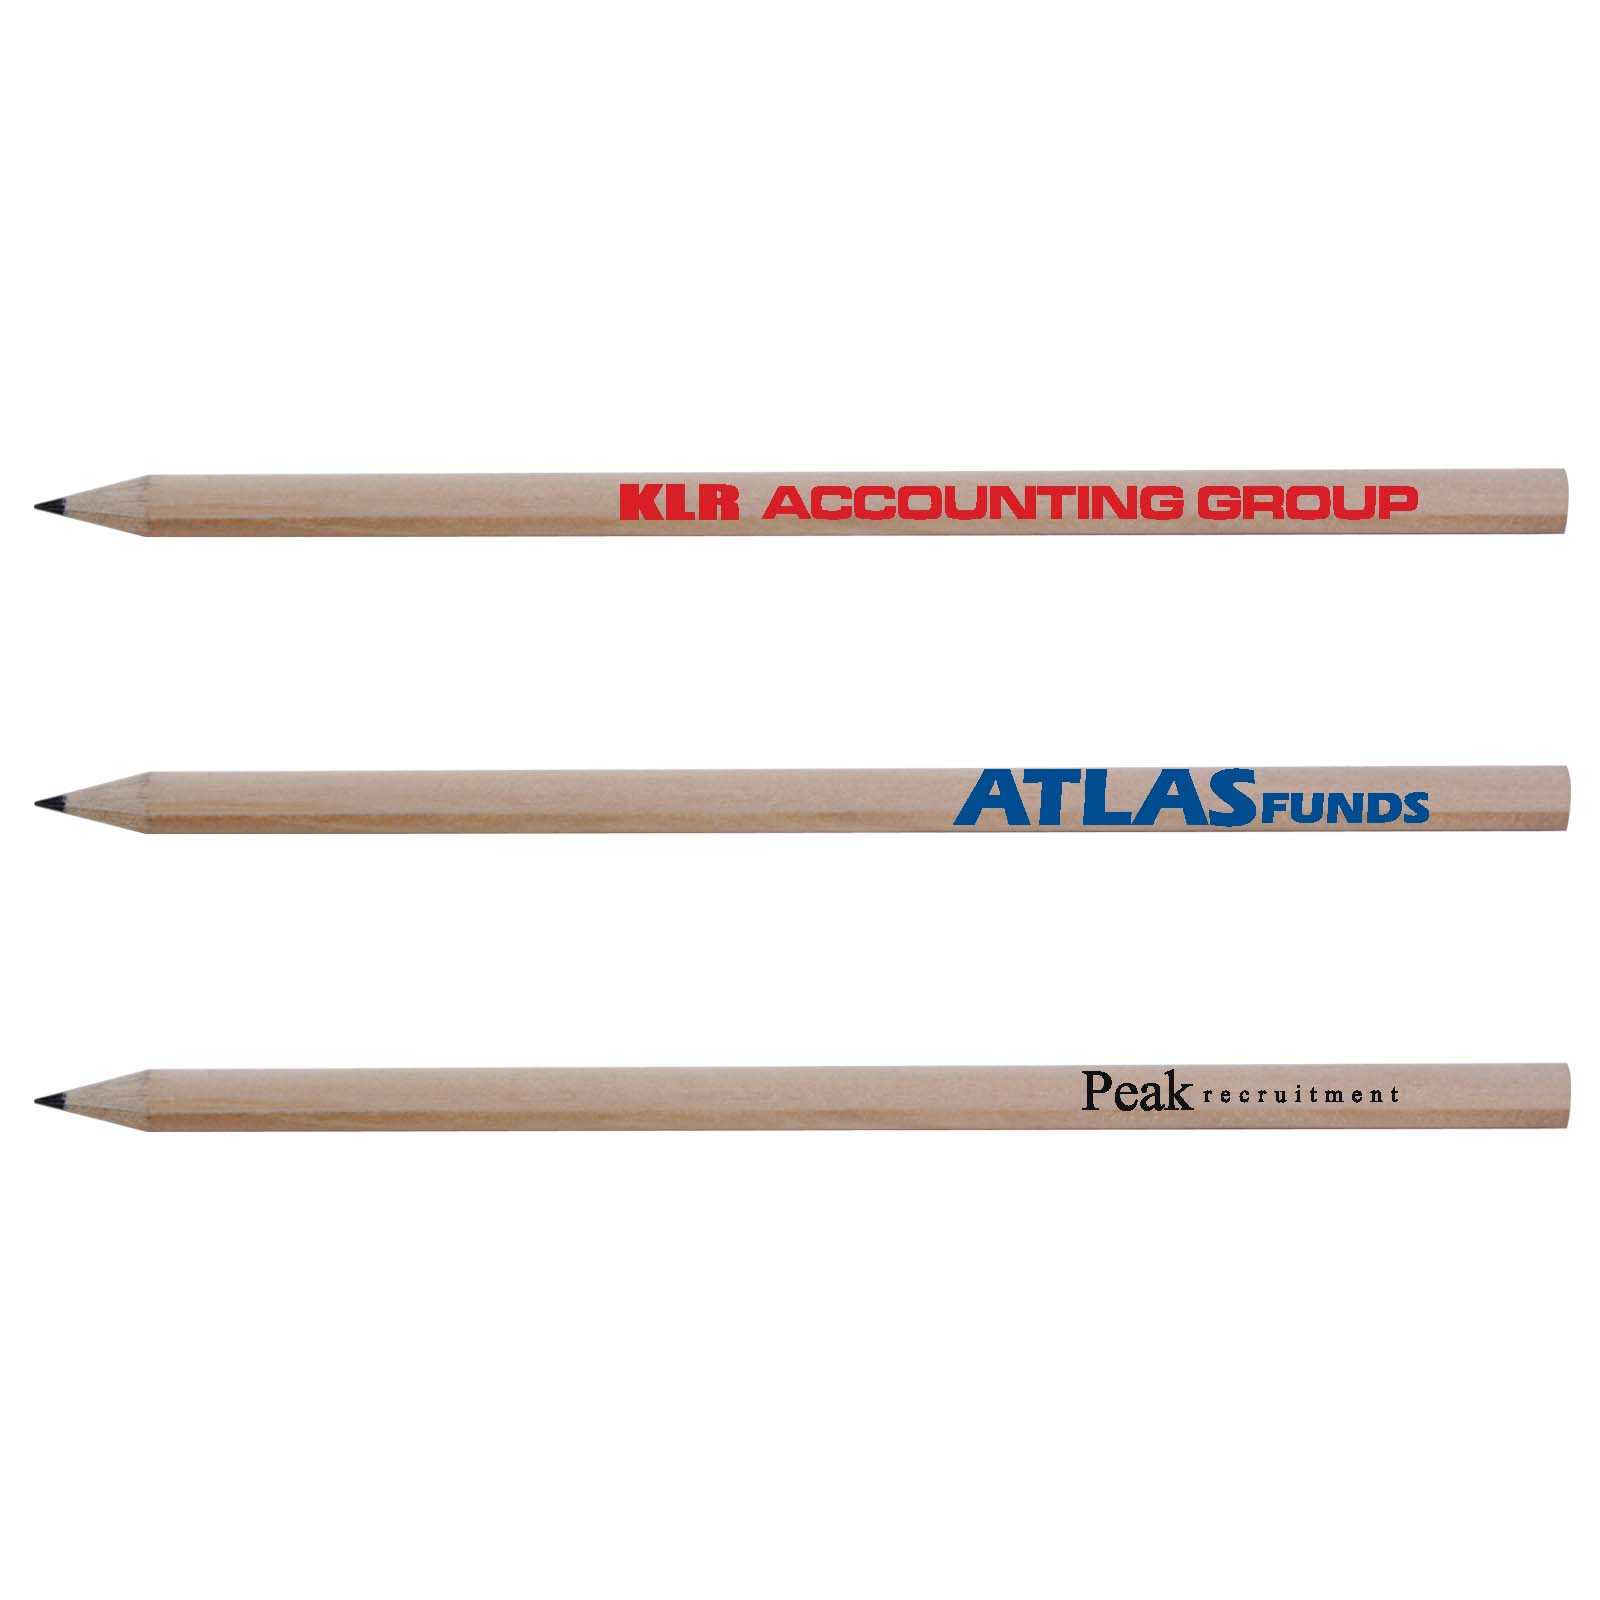 Sharpened Full Length Pencil - Includes a 1 colour printed logo, From $0.22